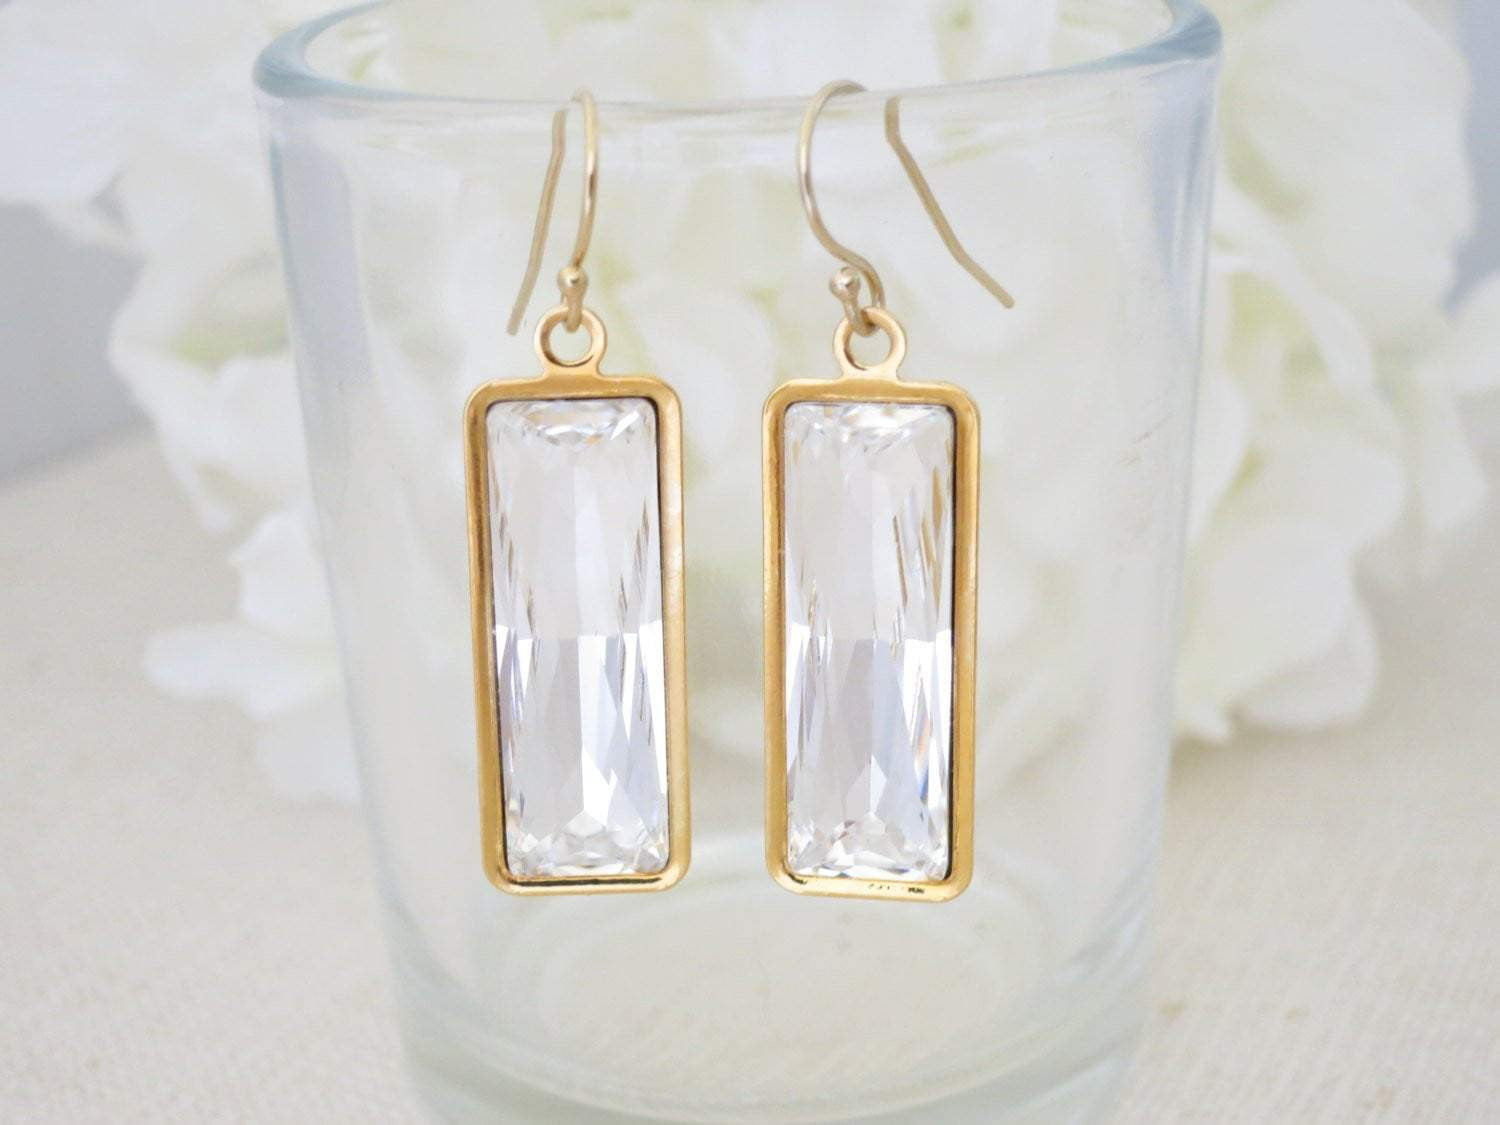 METRO:  Modern Baguette Bridal Earrings - BlingBaddaBoom - Minimalist, Vintage, Modern Wedding and Bridal Jewelry